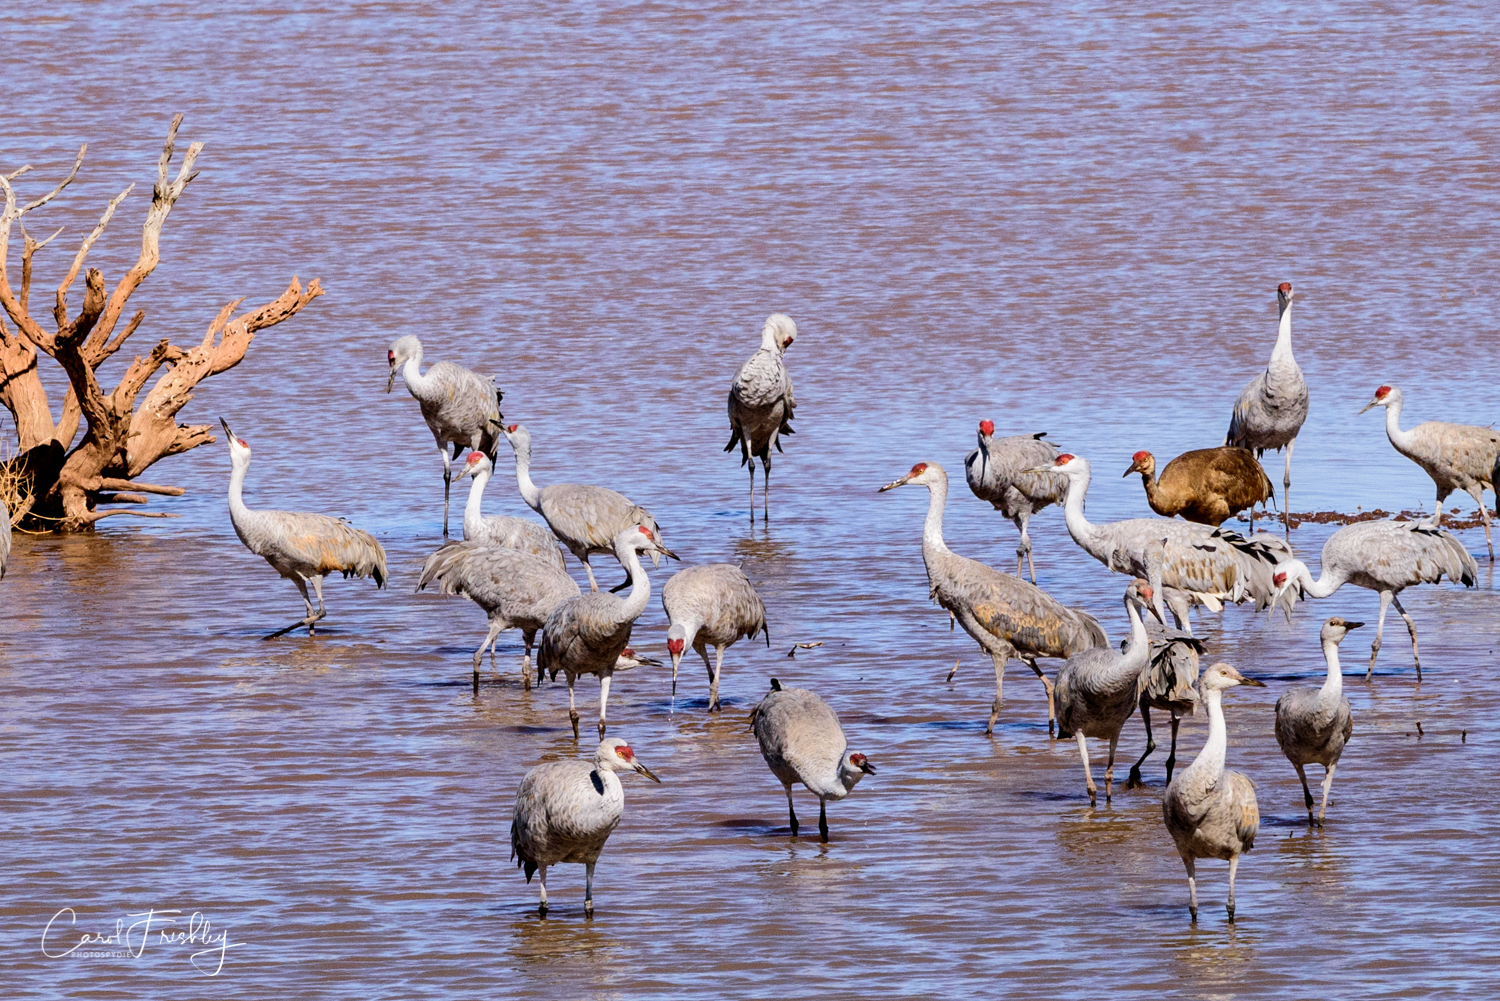 I was told by another photographer that brown Sand Hill Cranes are what is found on the East Coast.  Not sure if that is true.  This brown bird looked a bit out of place.